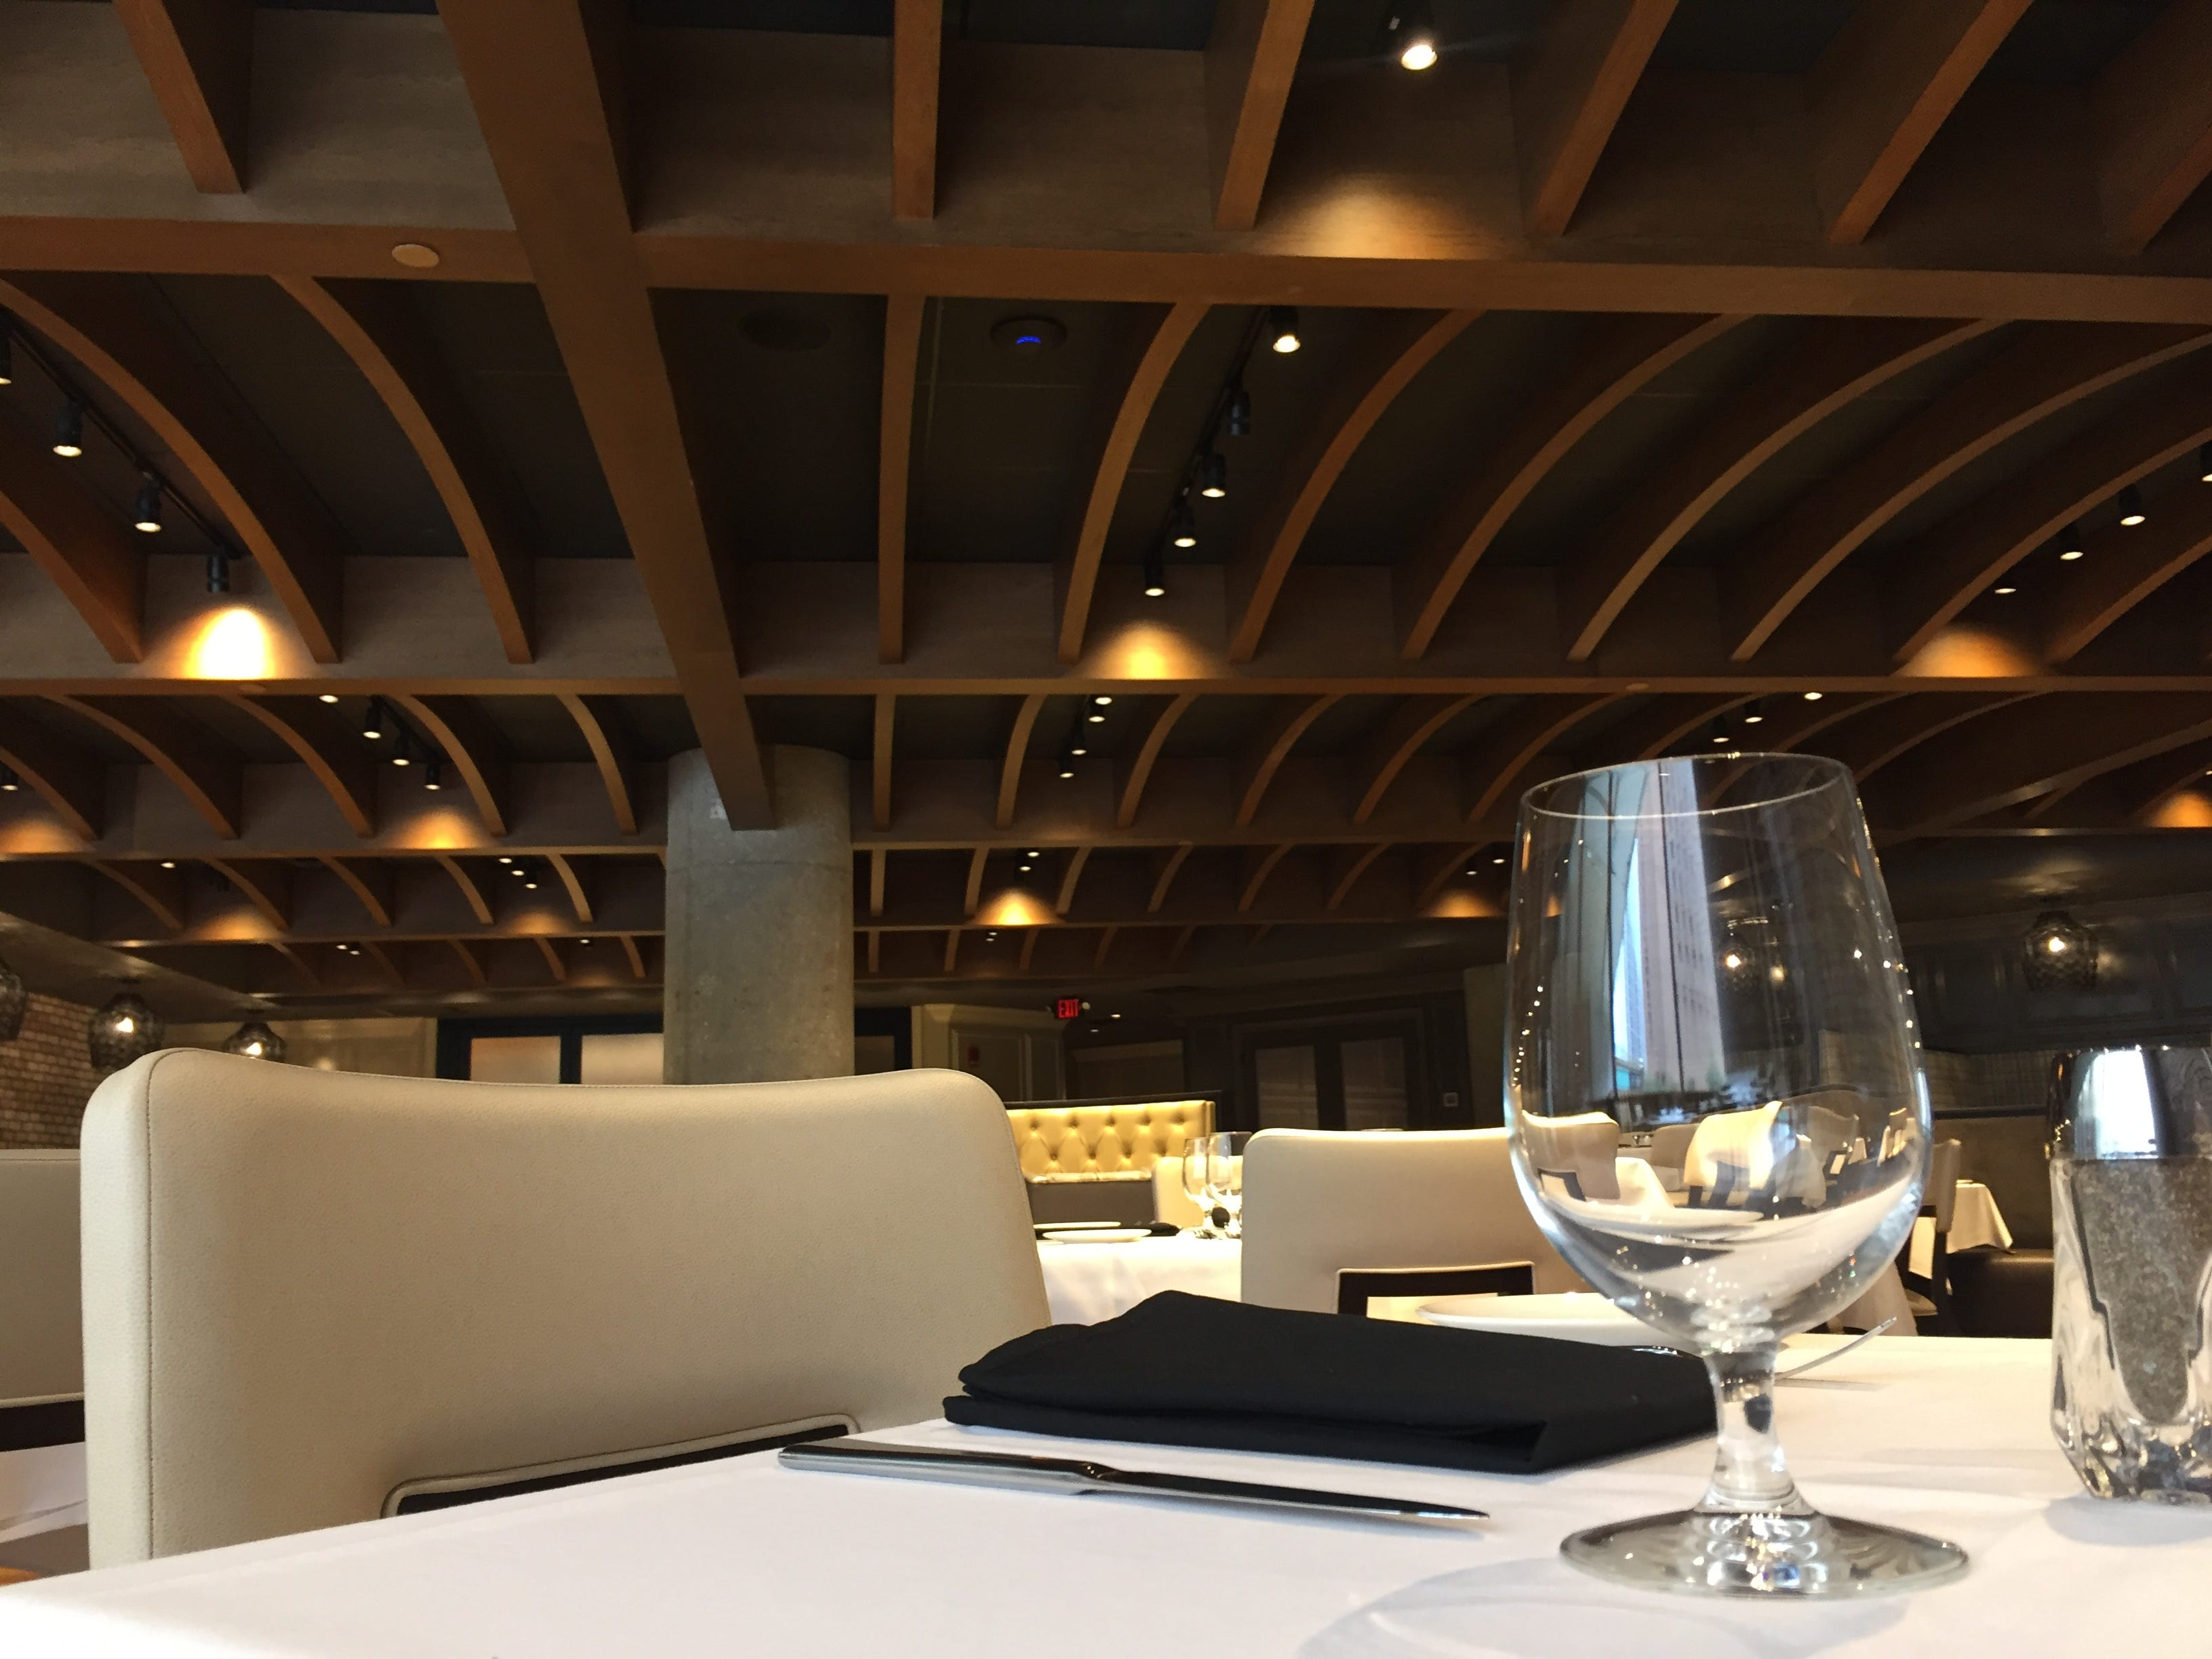 Geometric woodwork composes the ceiling at Tony's Steaks & Seafood, 110 W. Washington St., Downtown Indianapolis.